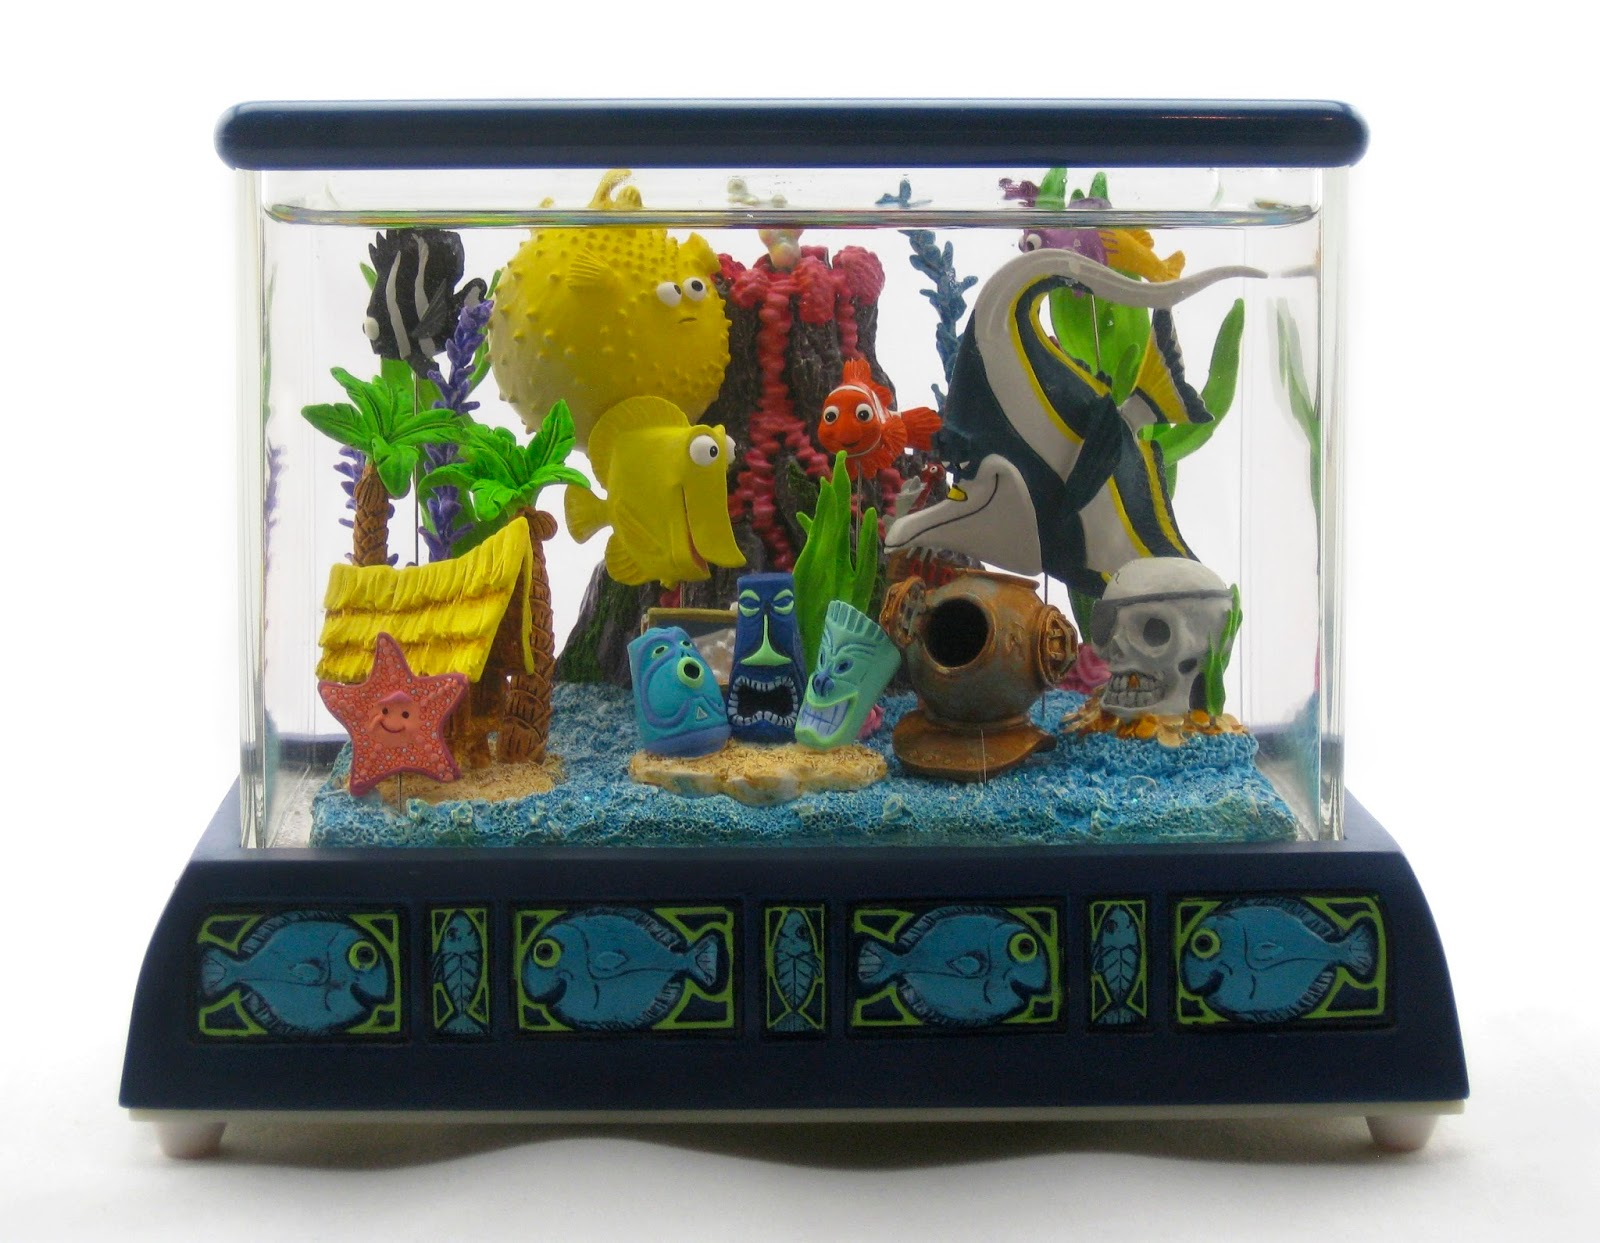 Fish in nemo aquarium - Finding Nemo Disney Store Fish Tank Gang Snowglobe